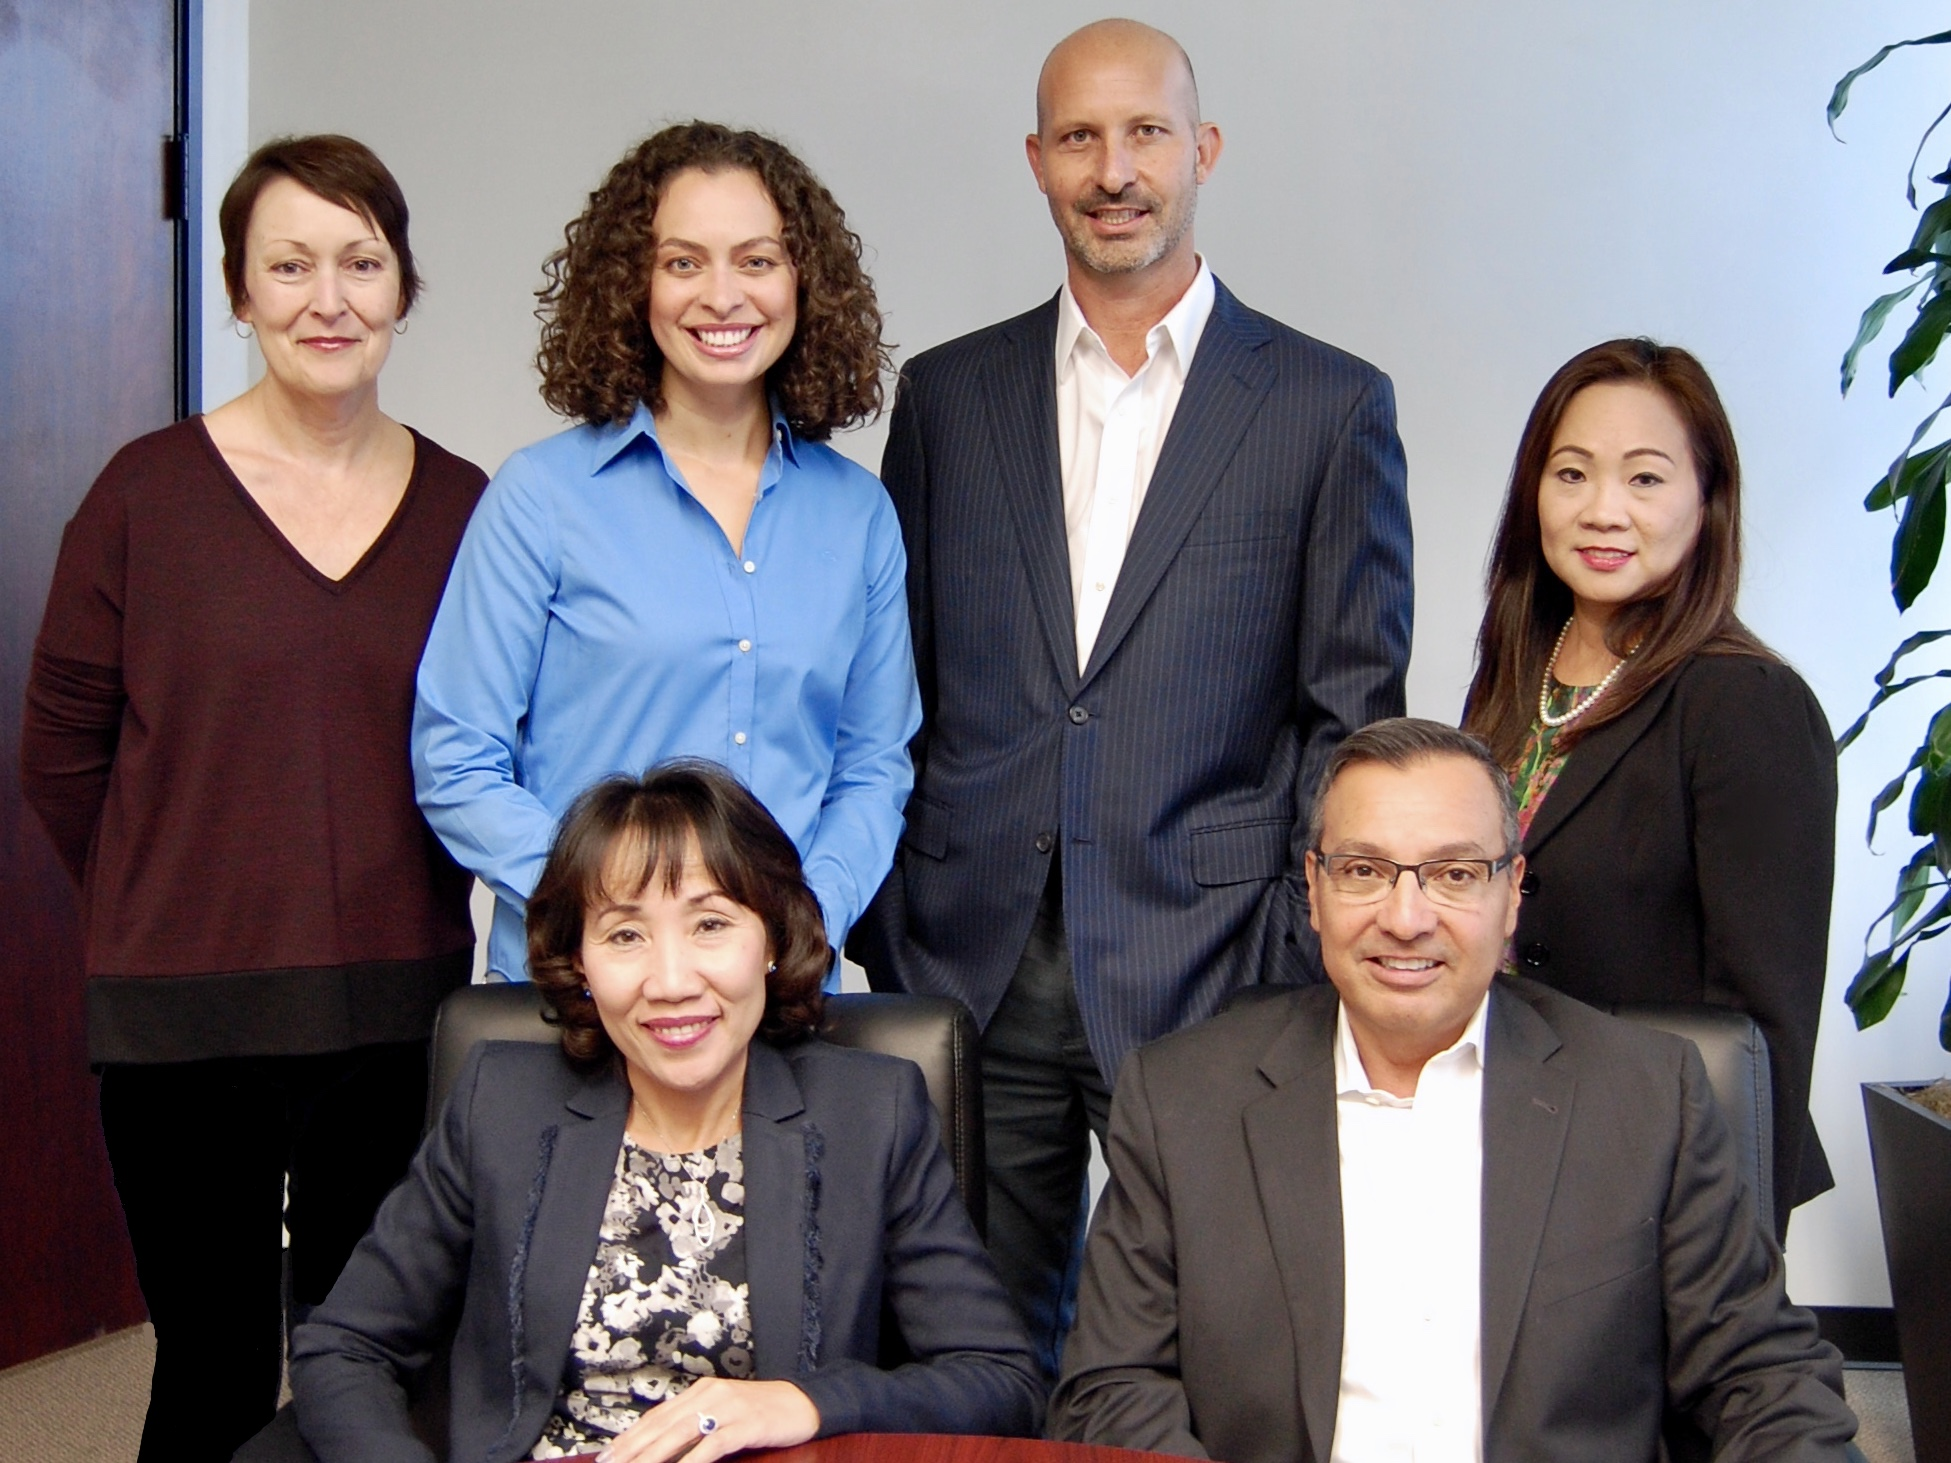 Left to right, bottom row: Katherine Le, CEO; Richard Marron, President; Karen O'Donovan, SVP Project Management Office; Jessica Maraboto, Director of Human Resources; Anthony Minero, SVP Finance & Analytics; Jennifer Vo, VP Corporate Finance/Controller